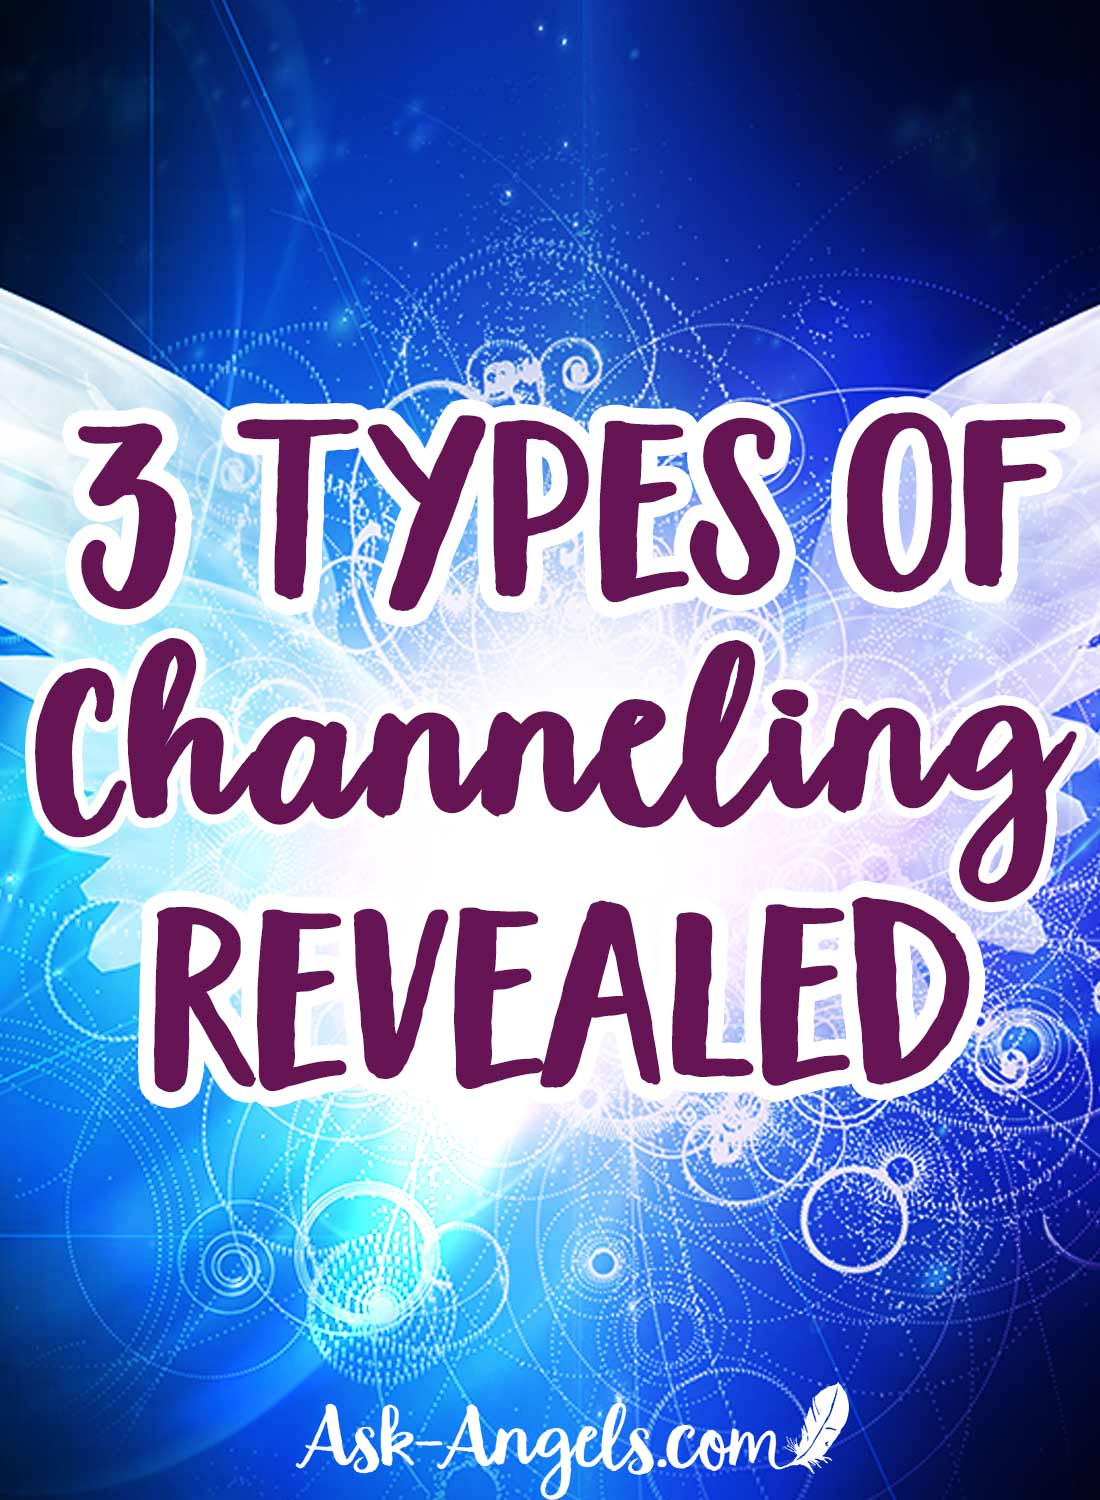 3 Types of Channeling Revealed